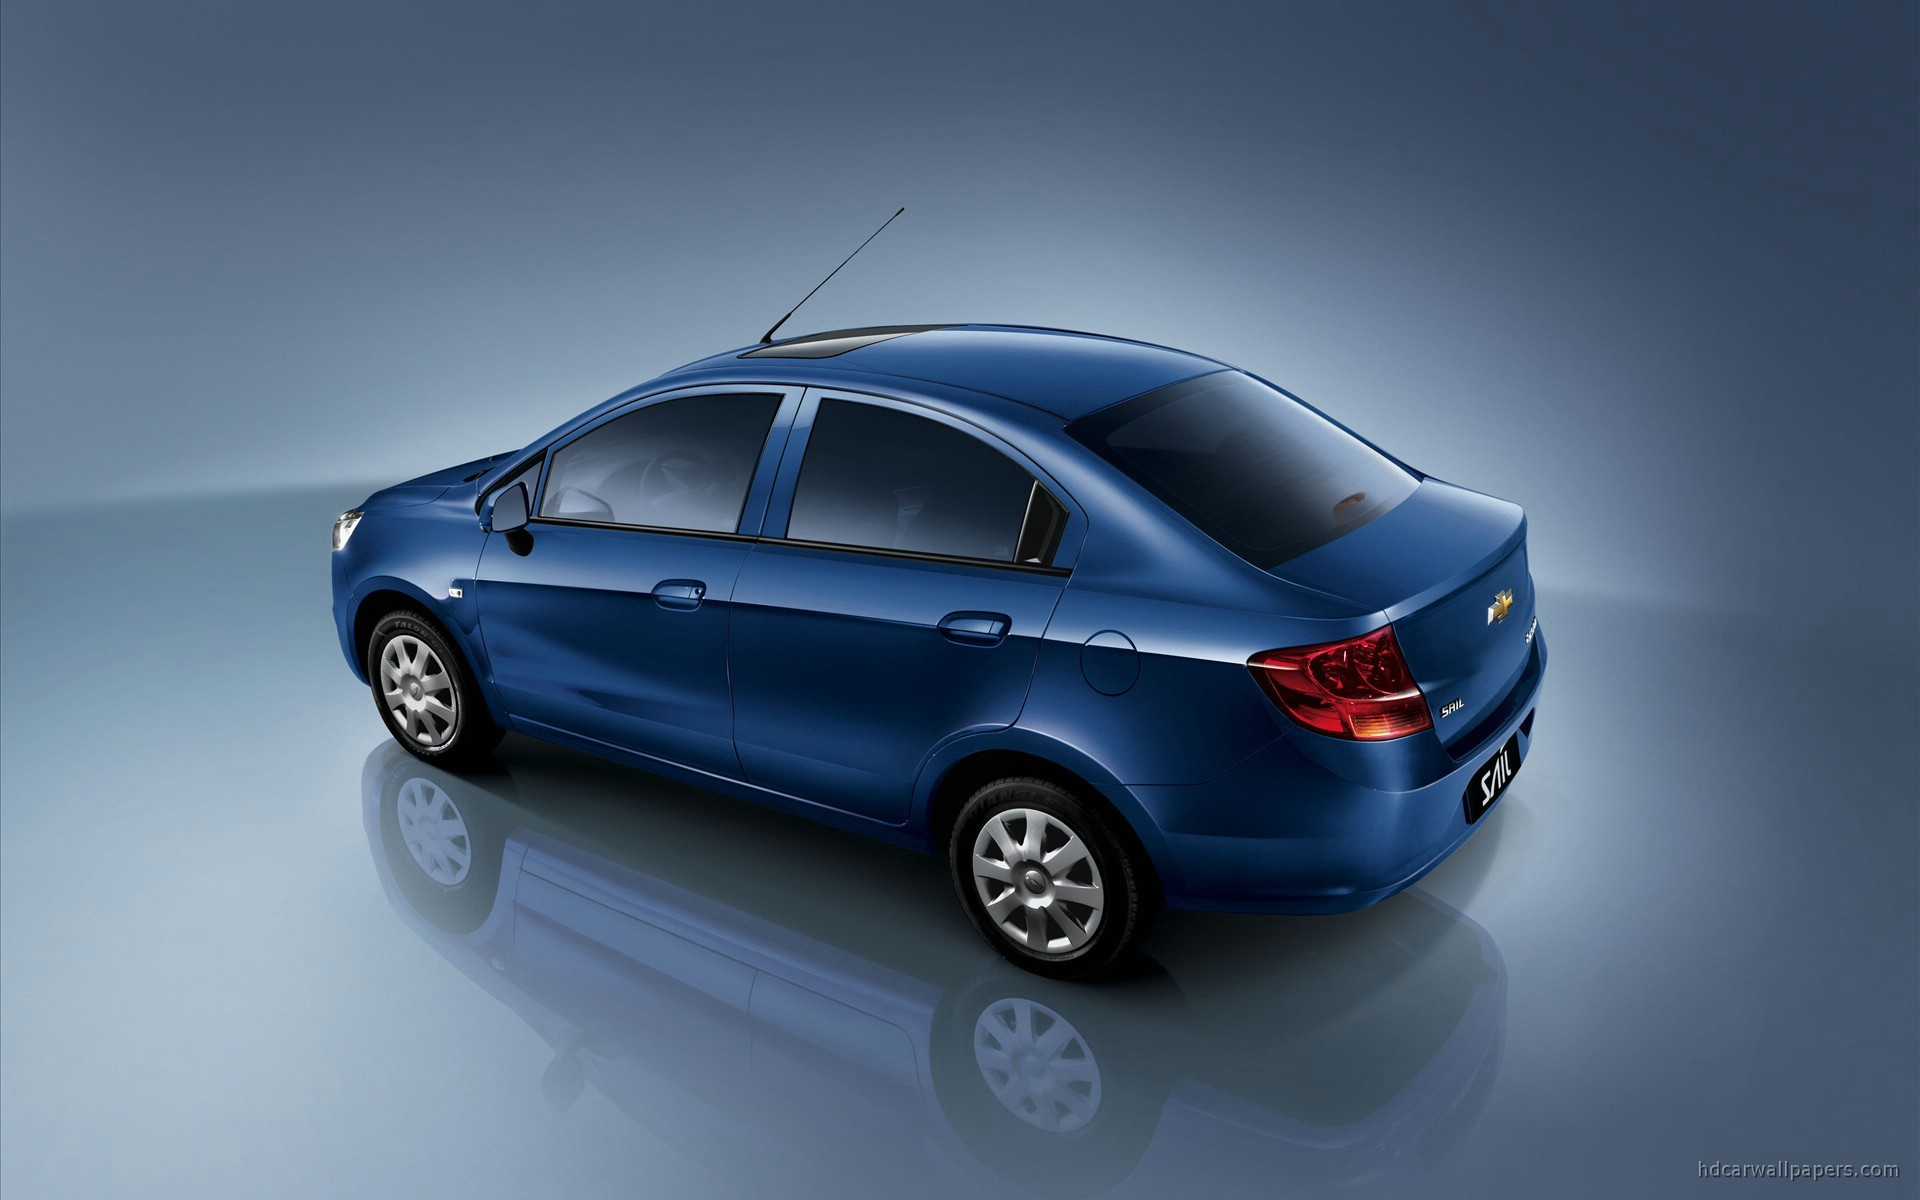 2011 Chevrolet New Sail Small Car Wallpaper | HD Car ...